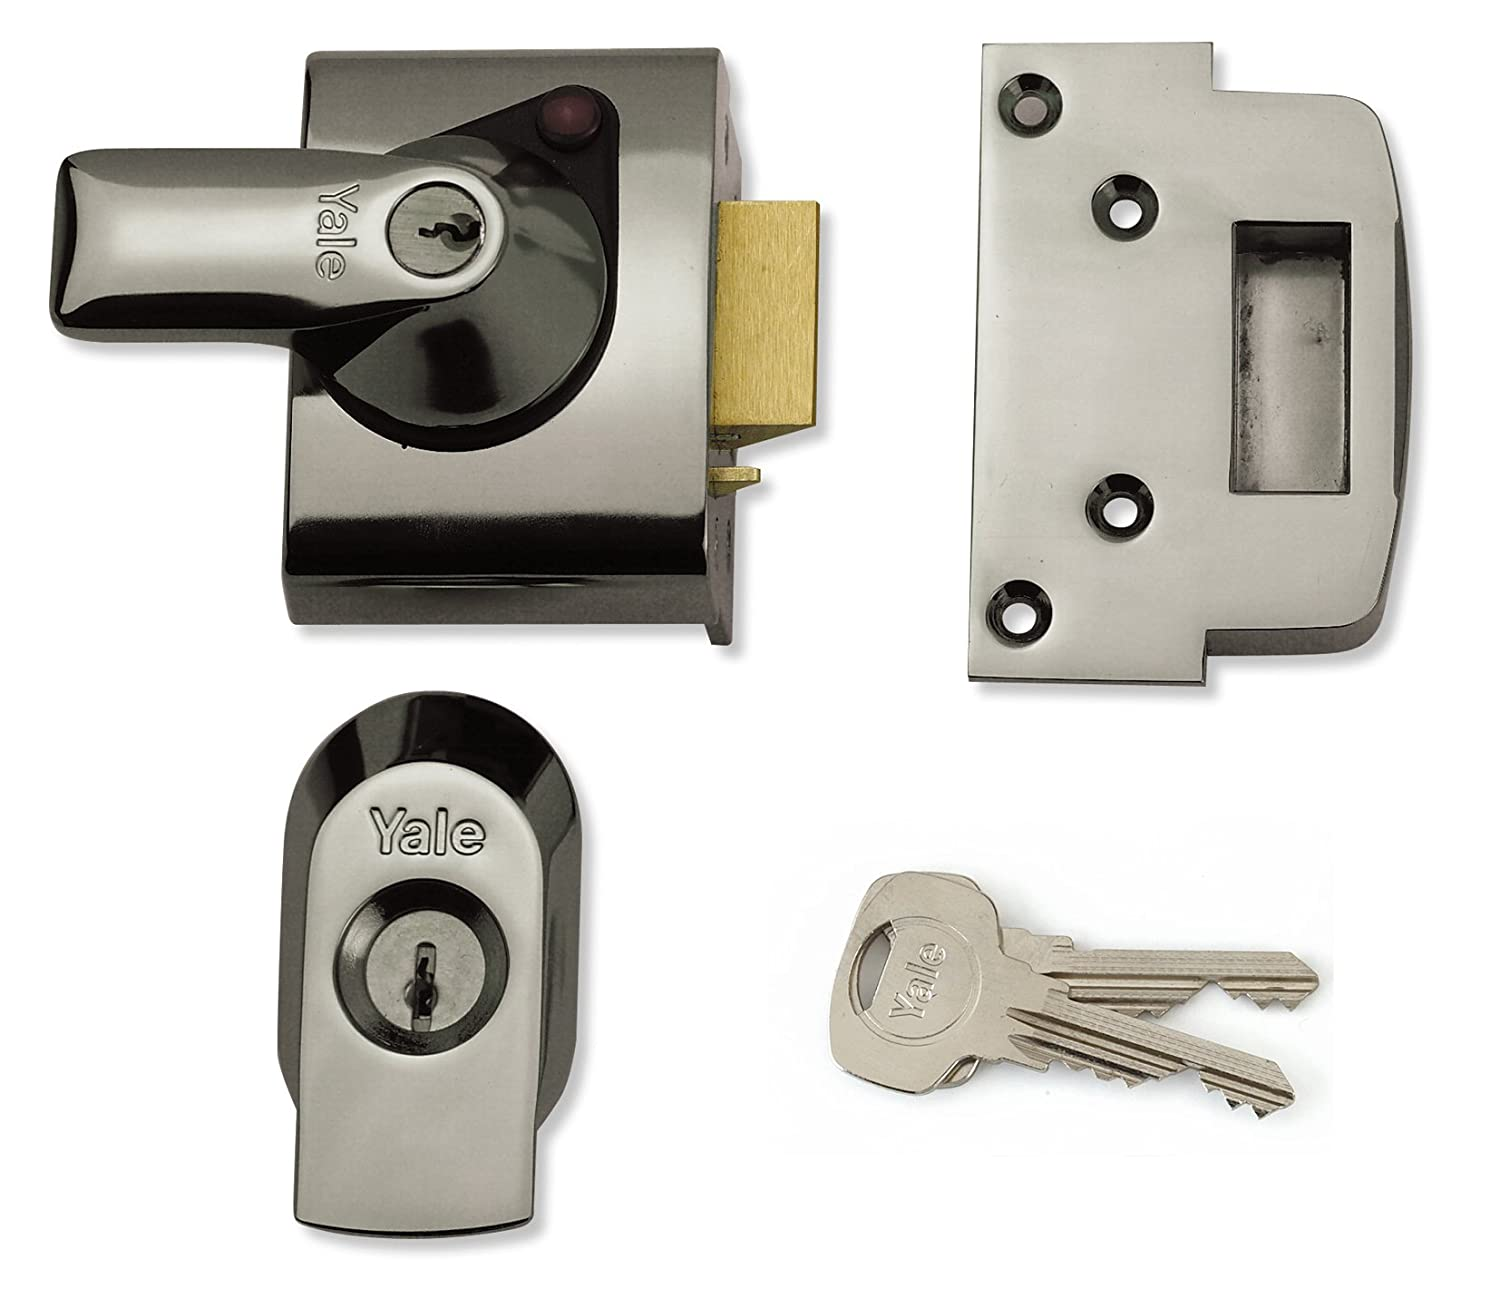 Yale Locks BS2 Nightlatch British Standard Security Lock 40 mm Brasslux Finish Visi Pack YALPBS2BLX